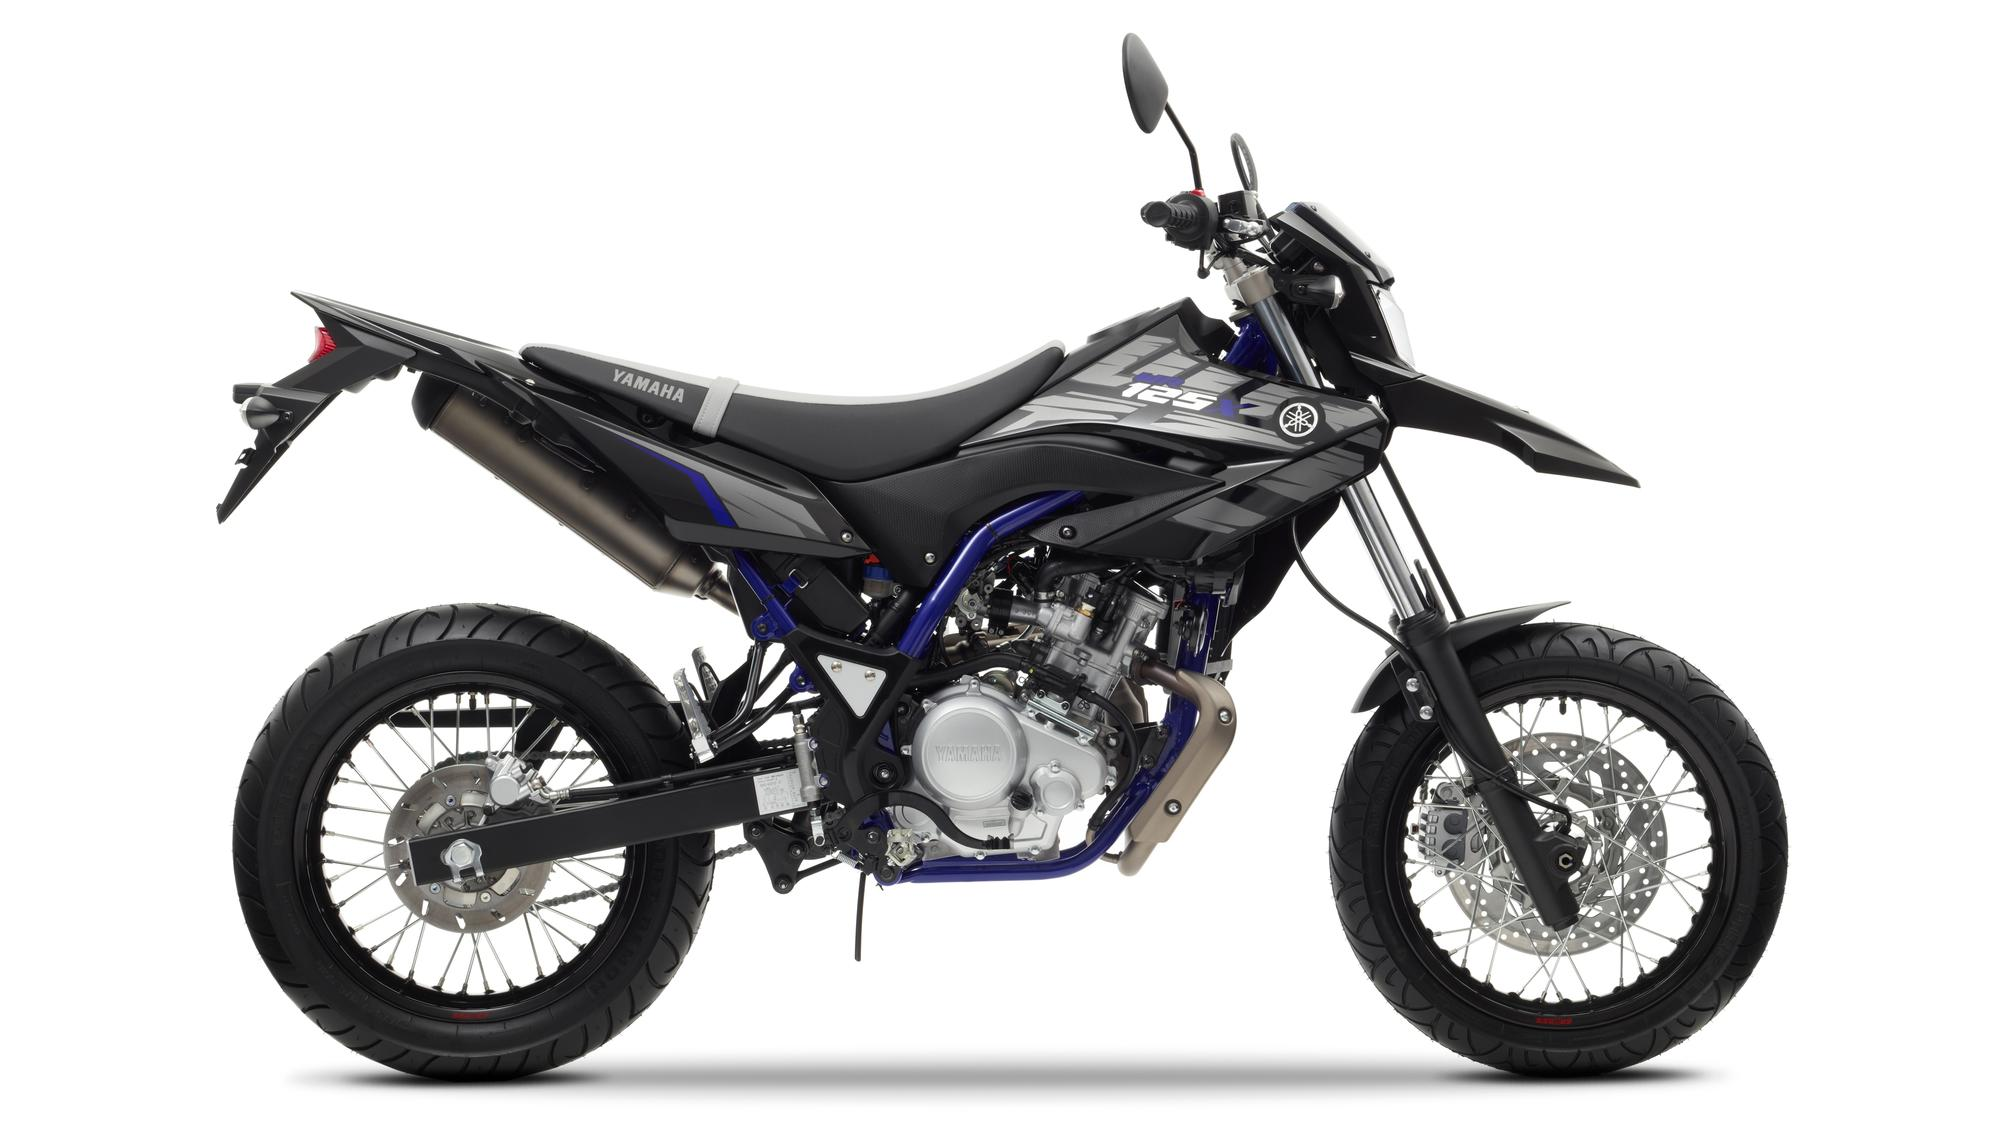 yamaha wr125r fiche technique avis et prix la poign e dans l 39 angle. Black Bedroom Furniture Sets. Home Design Ideas